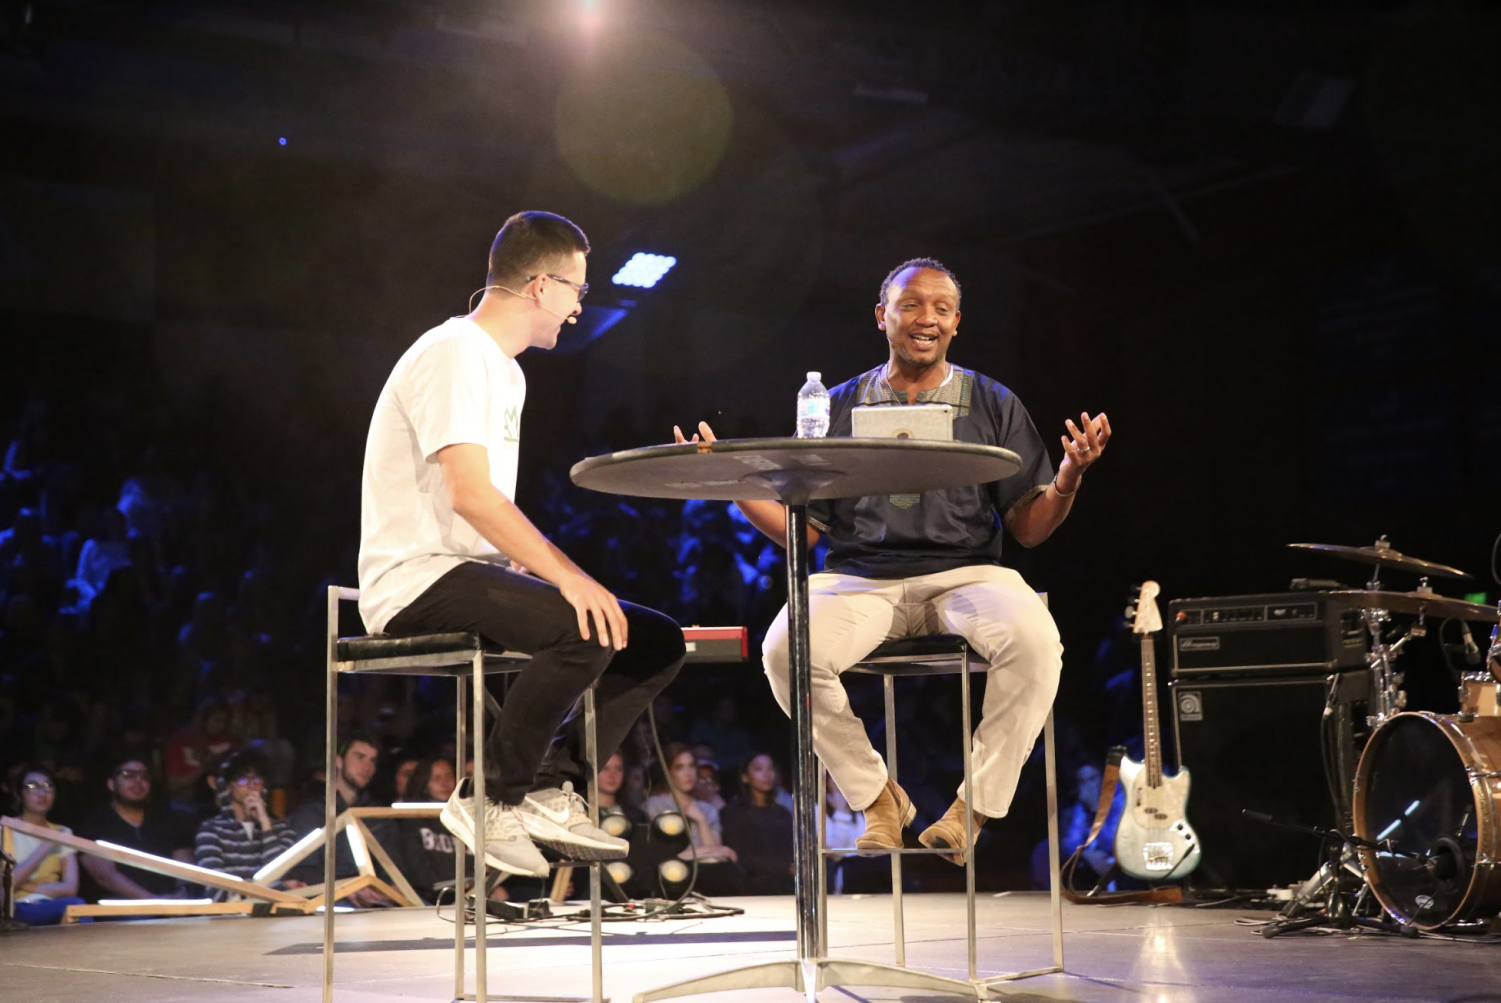 Christian+Mungai%2C+the+Global+Engagement+Pastor+of+Mariner%27s+Church%2C+has+a+Q%26A+session+with+emcee+Jake+Nagy+during+Day+2+of+the+2019+Missions+Conference+on+March+21.